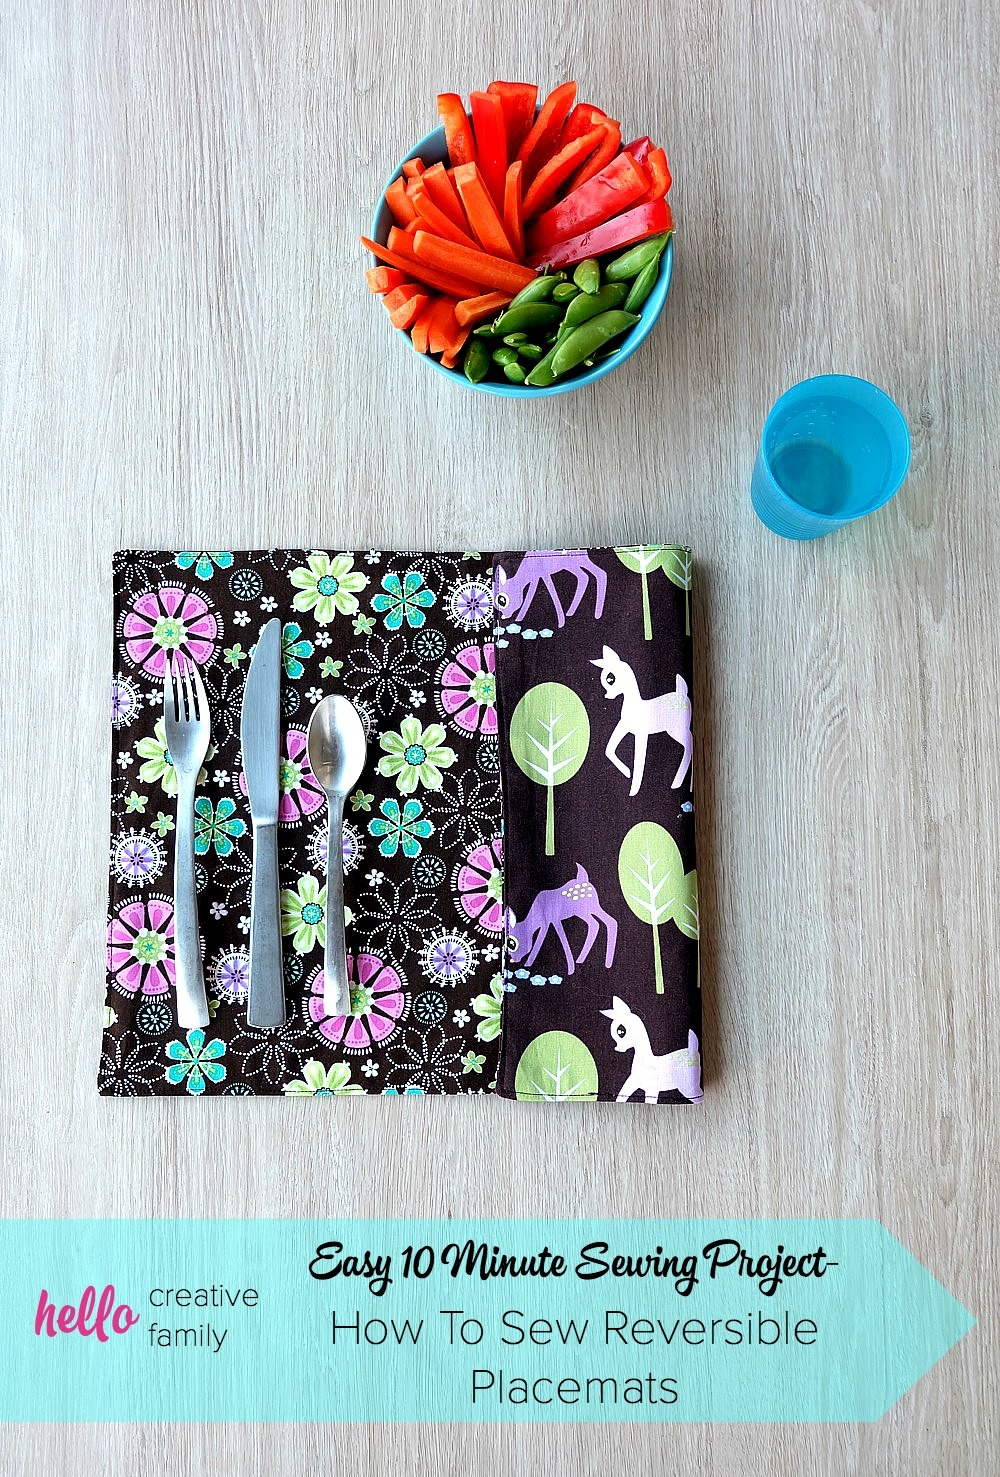 Easy 10 Minute Sewing Project- How To Sew Reversible Placemats - Free Printable Placemat Patterns